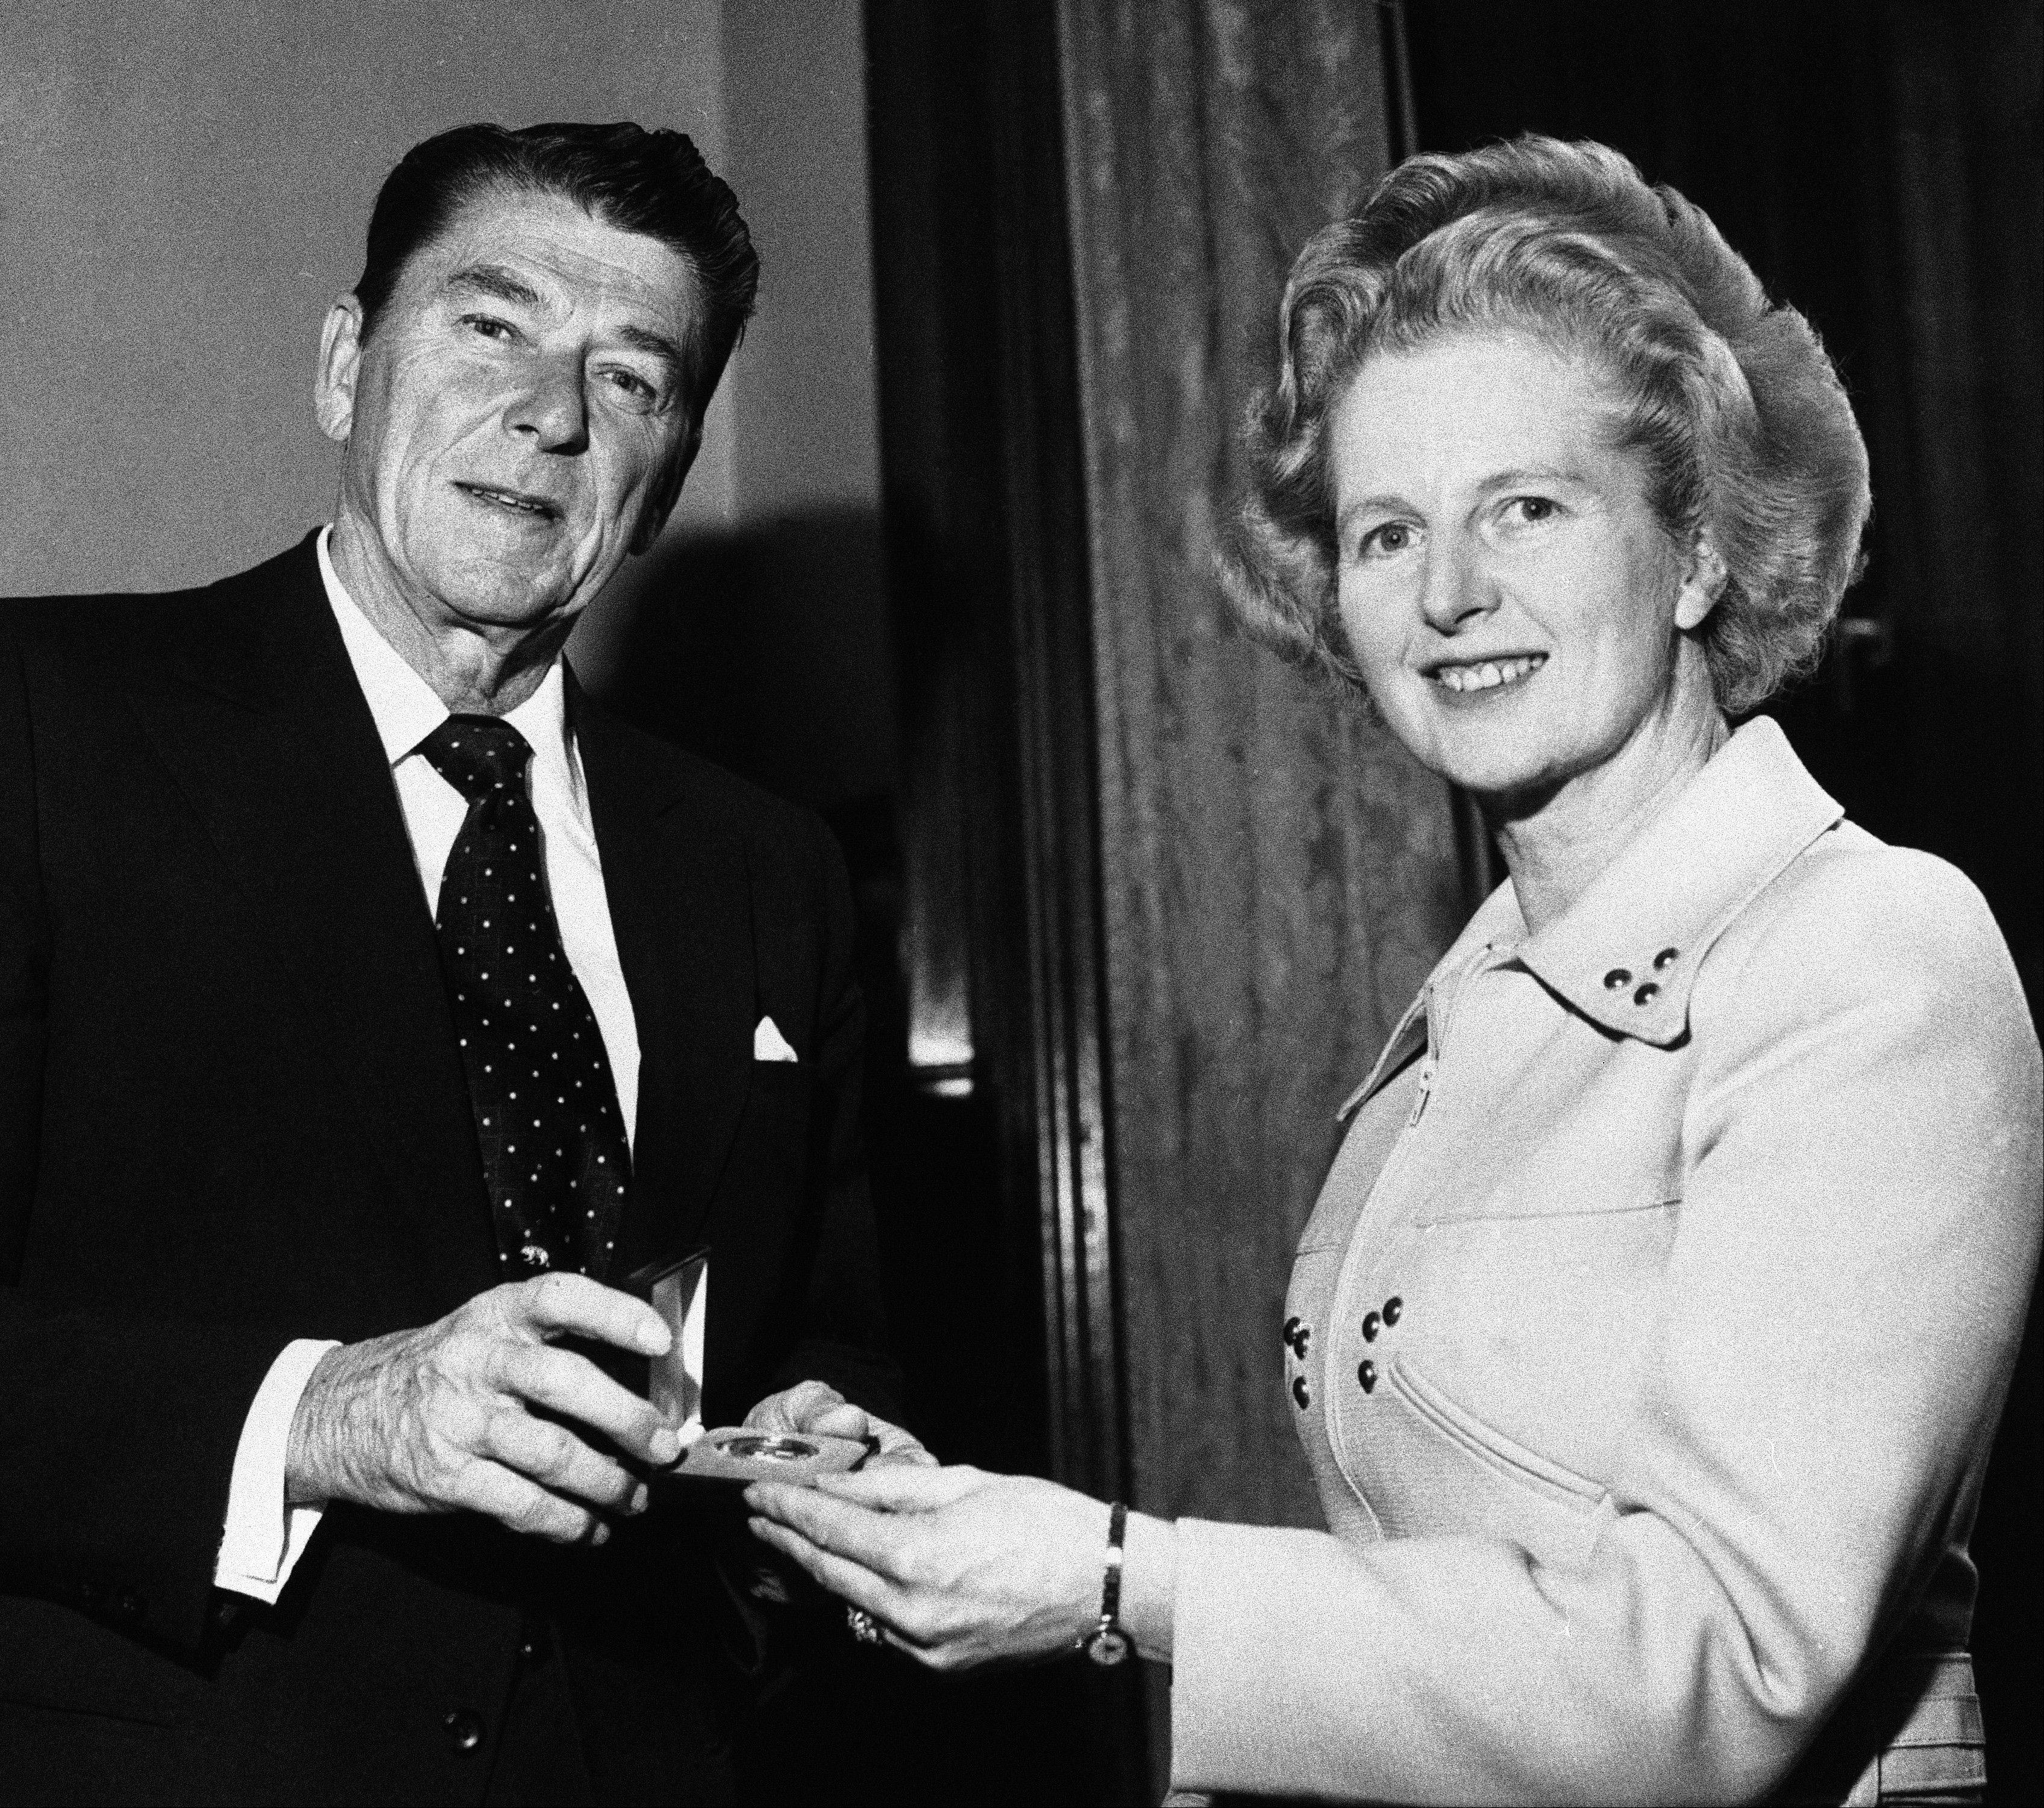 Former California Governor Ronald Reagan presents a silver dollar medallion to Opposition Leader Margaret Thatcher when he visited her office at the House of Commons in London.